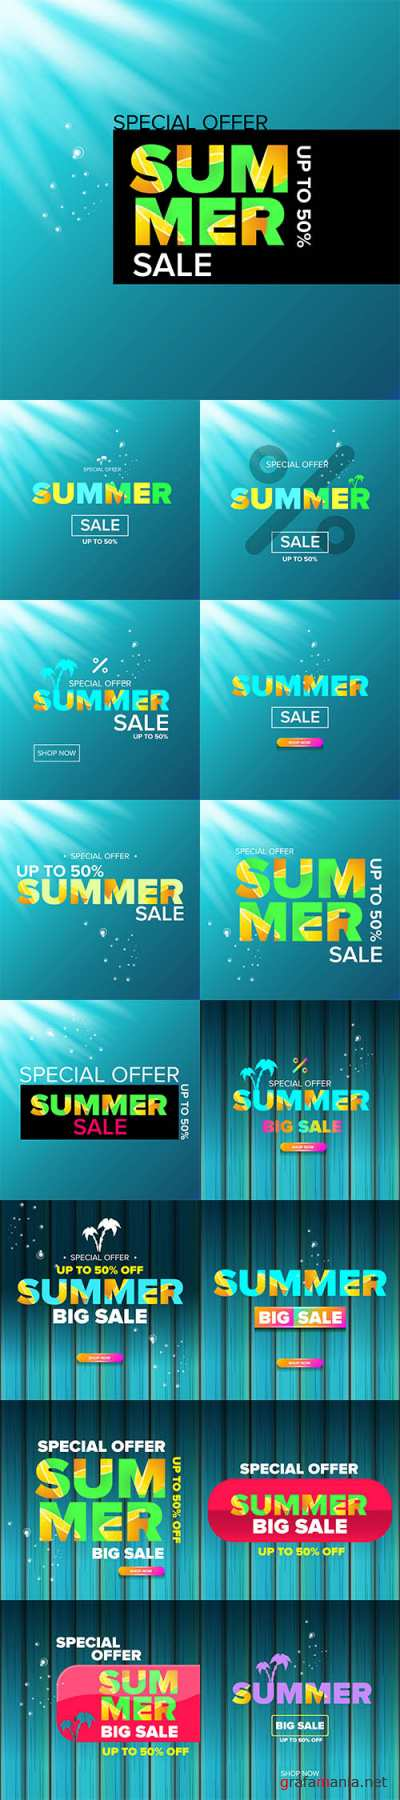 Vecto Summer sale modern color design template web banner or poster